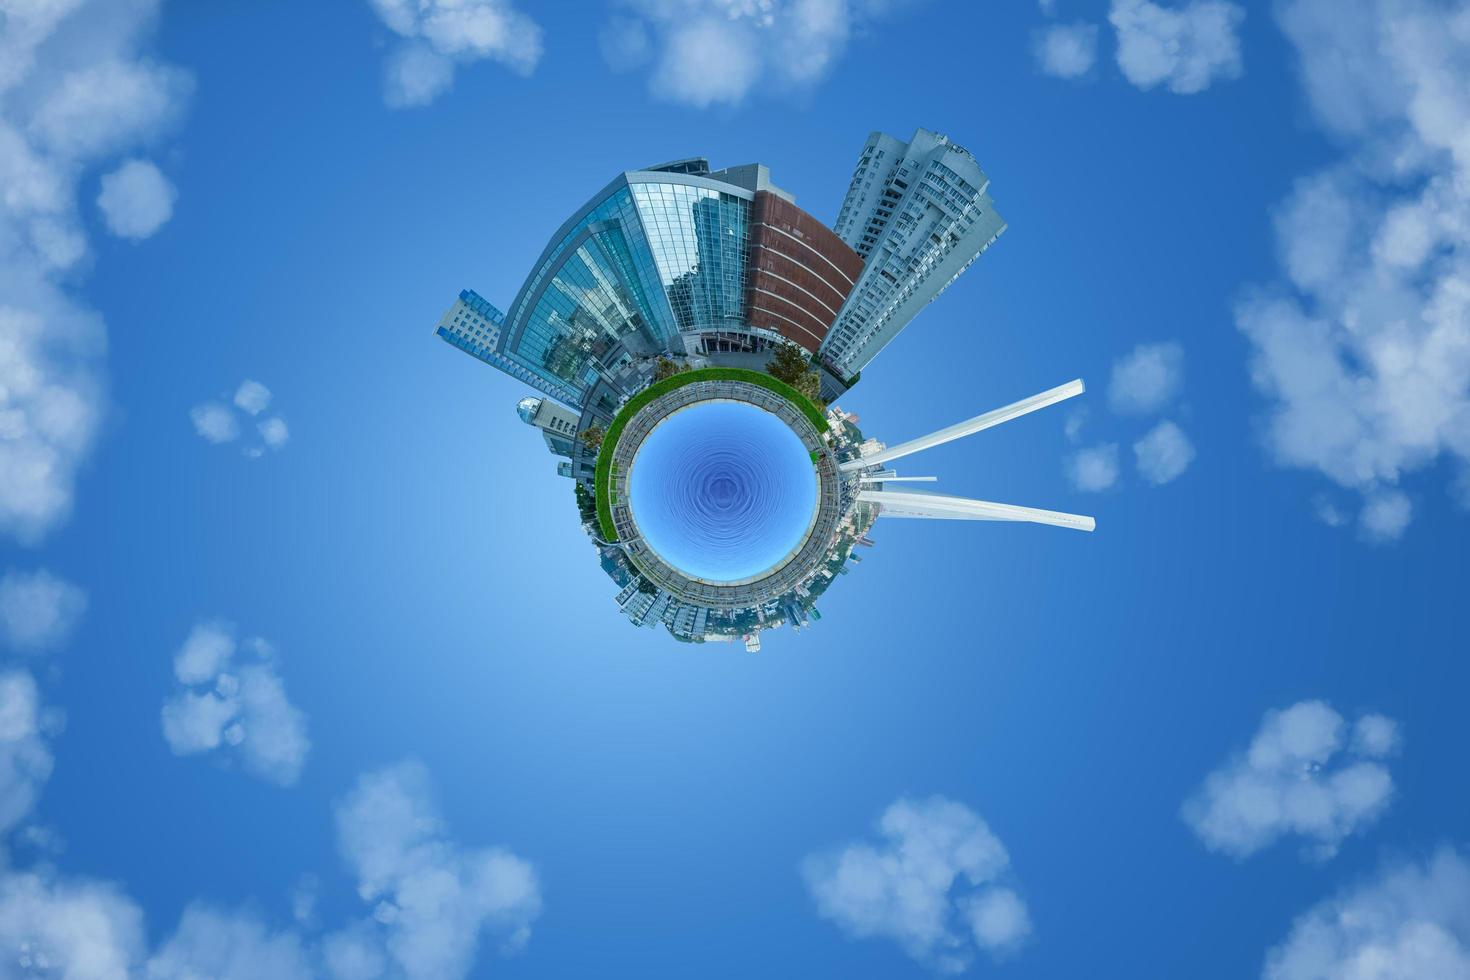 Cityscape with skyline in tiny planet photography style in Vladivostok, Russia photo